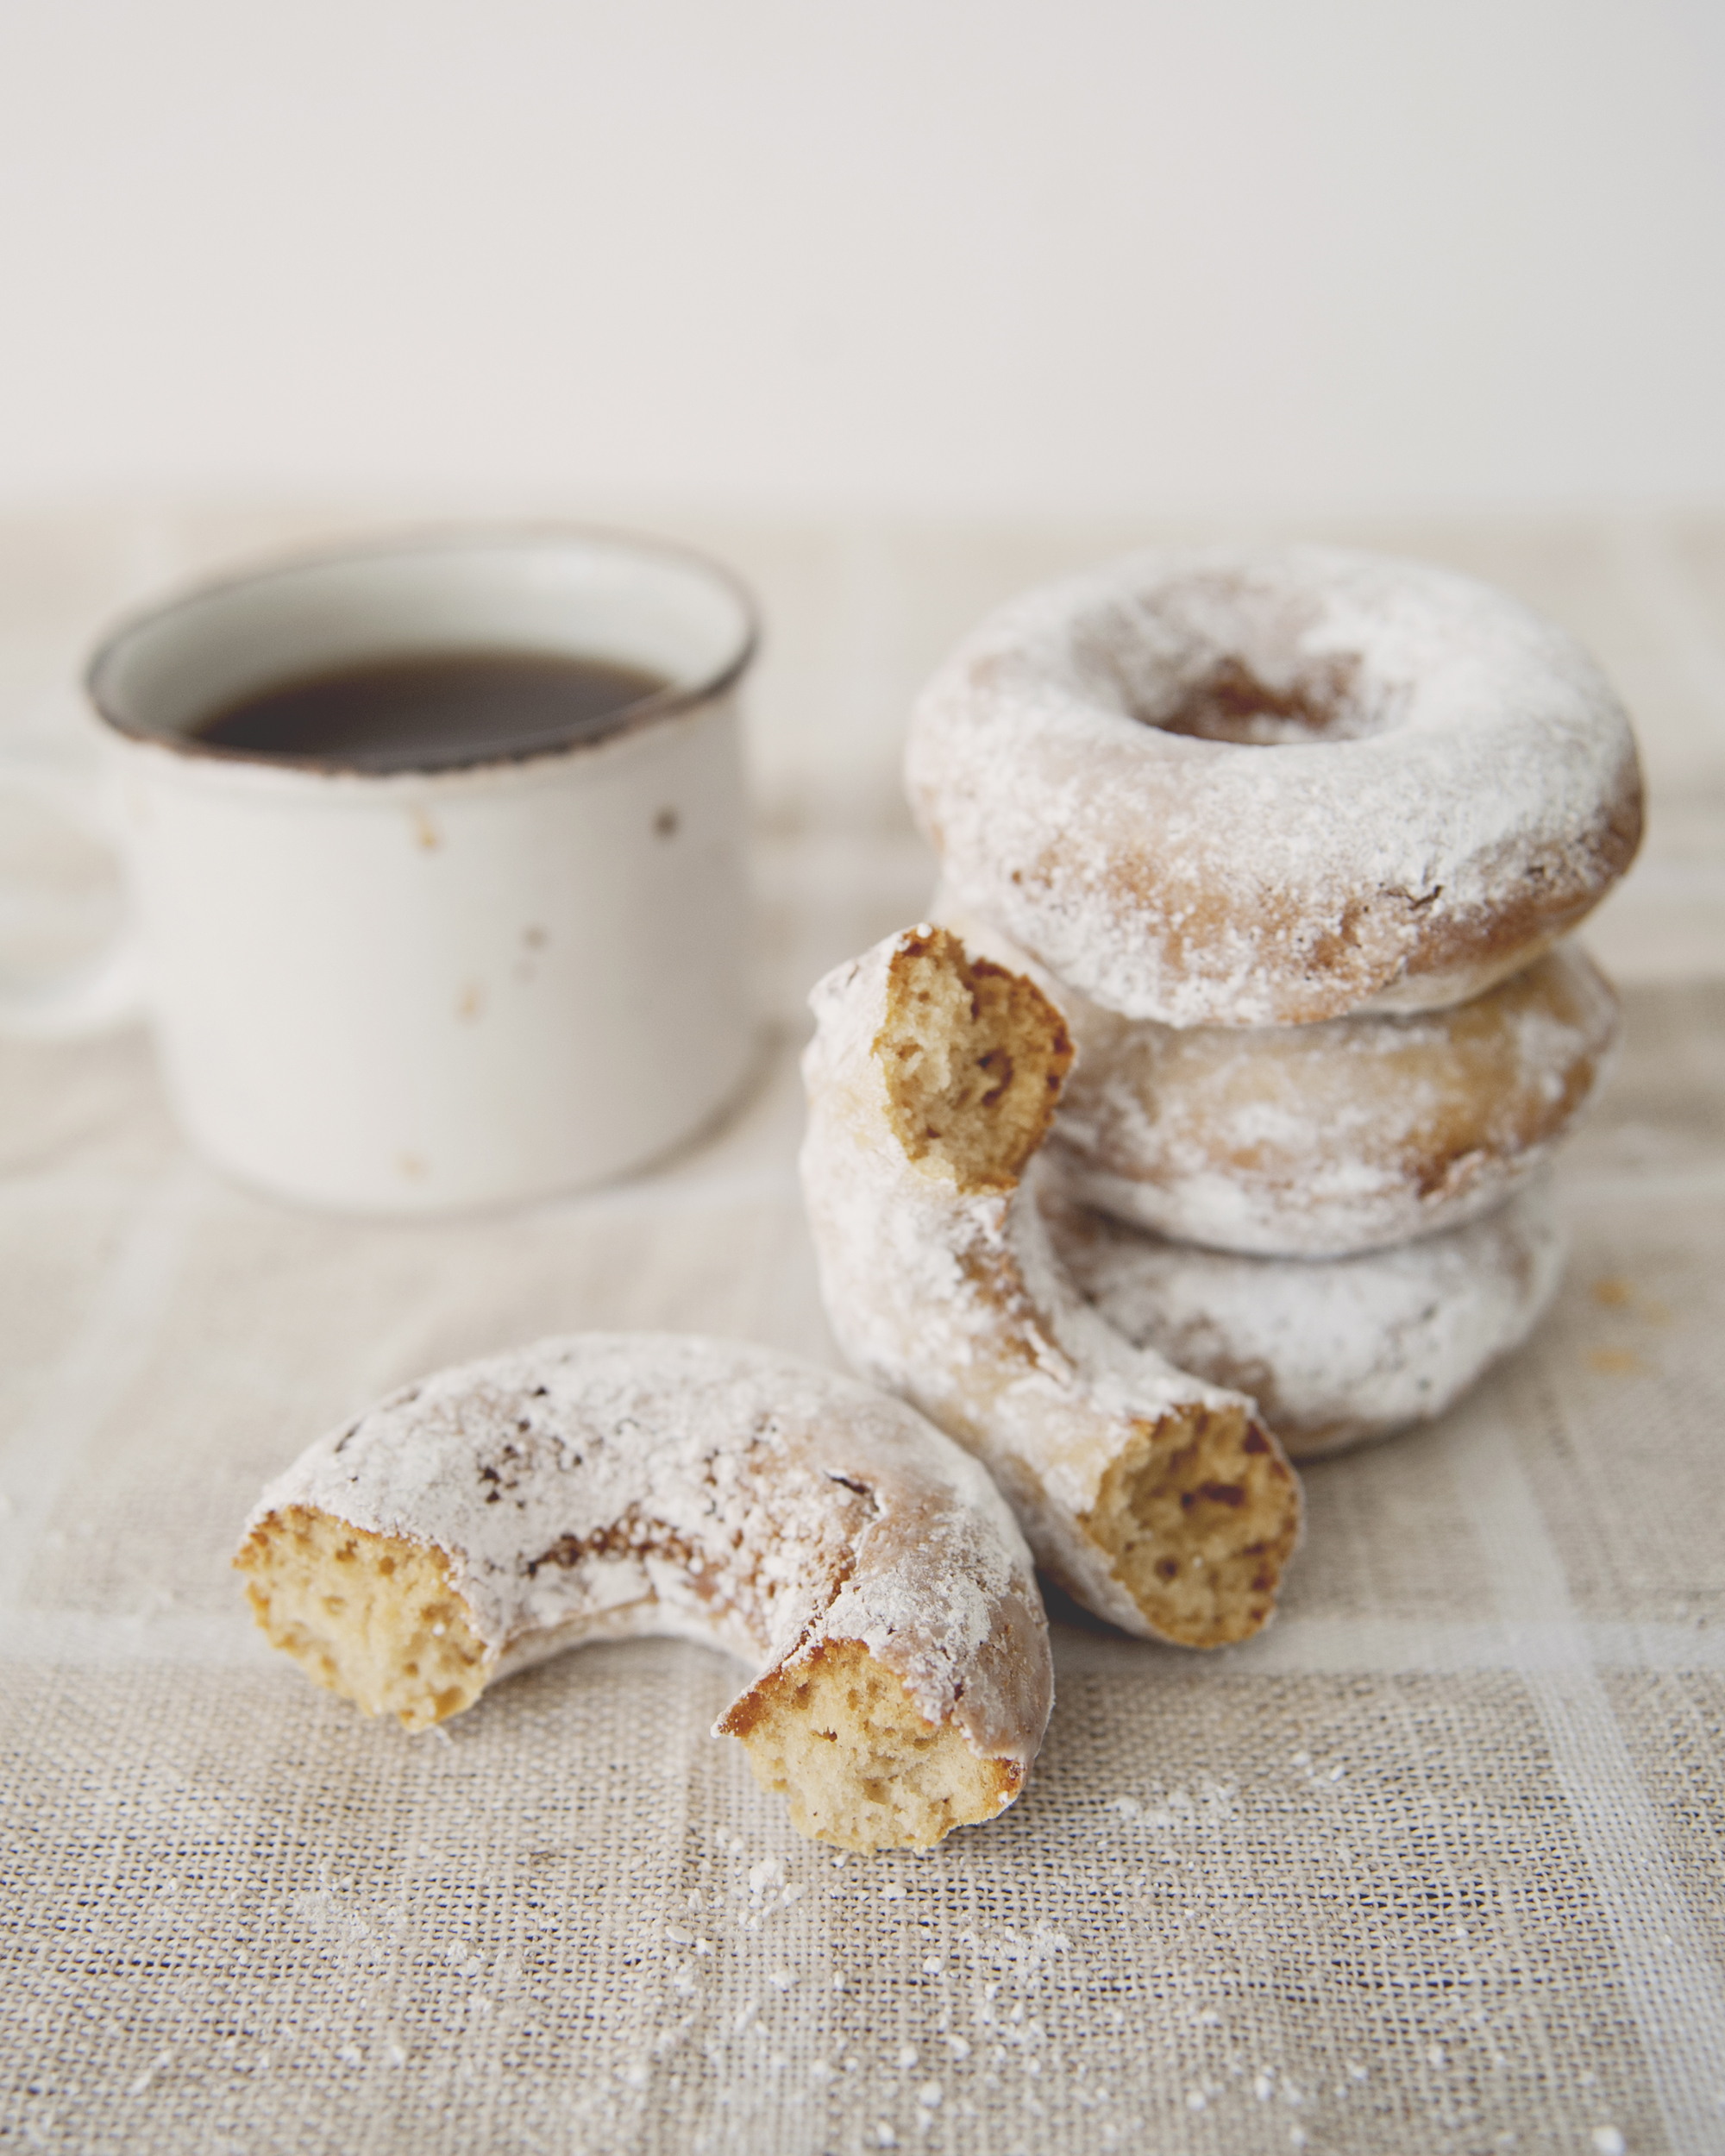 Sour milk doughnuts, dusted with sugar.